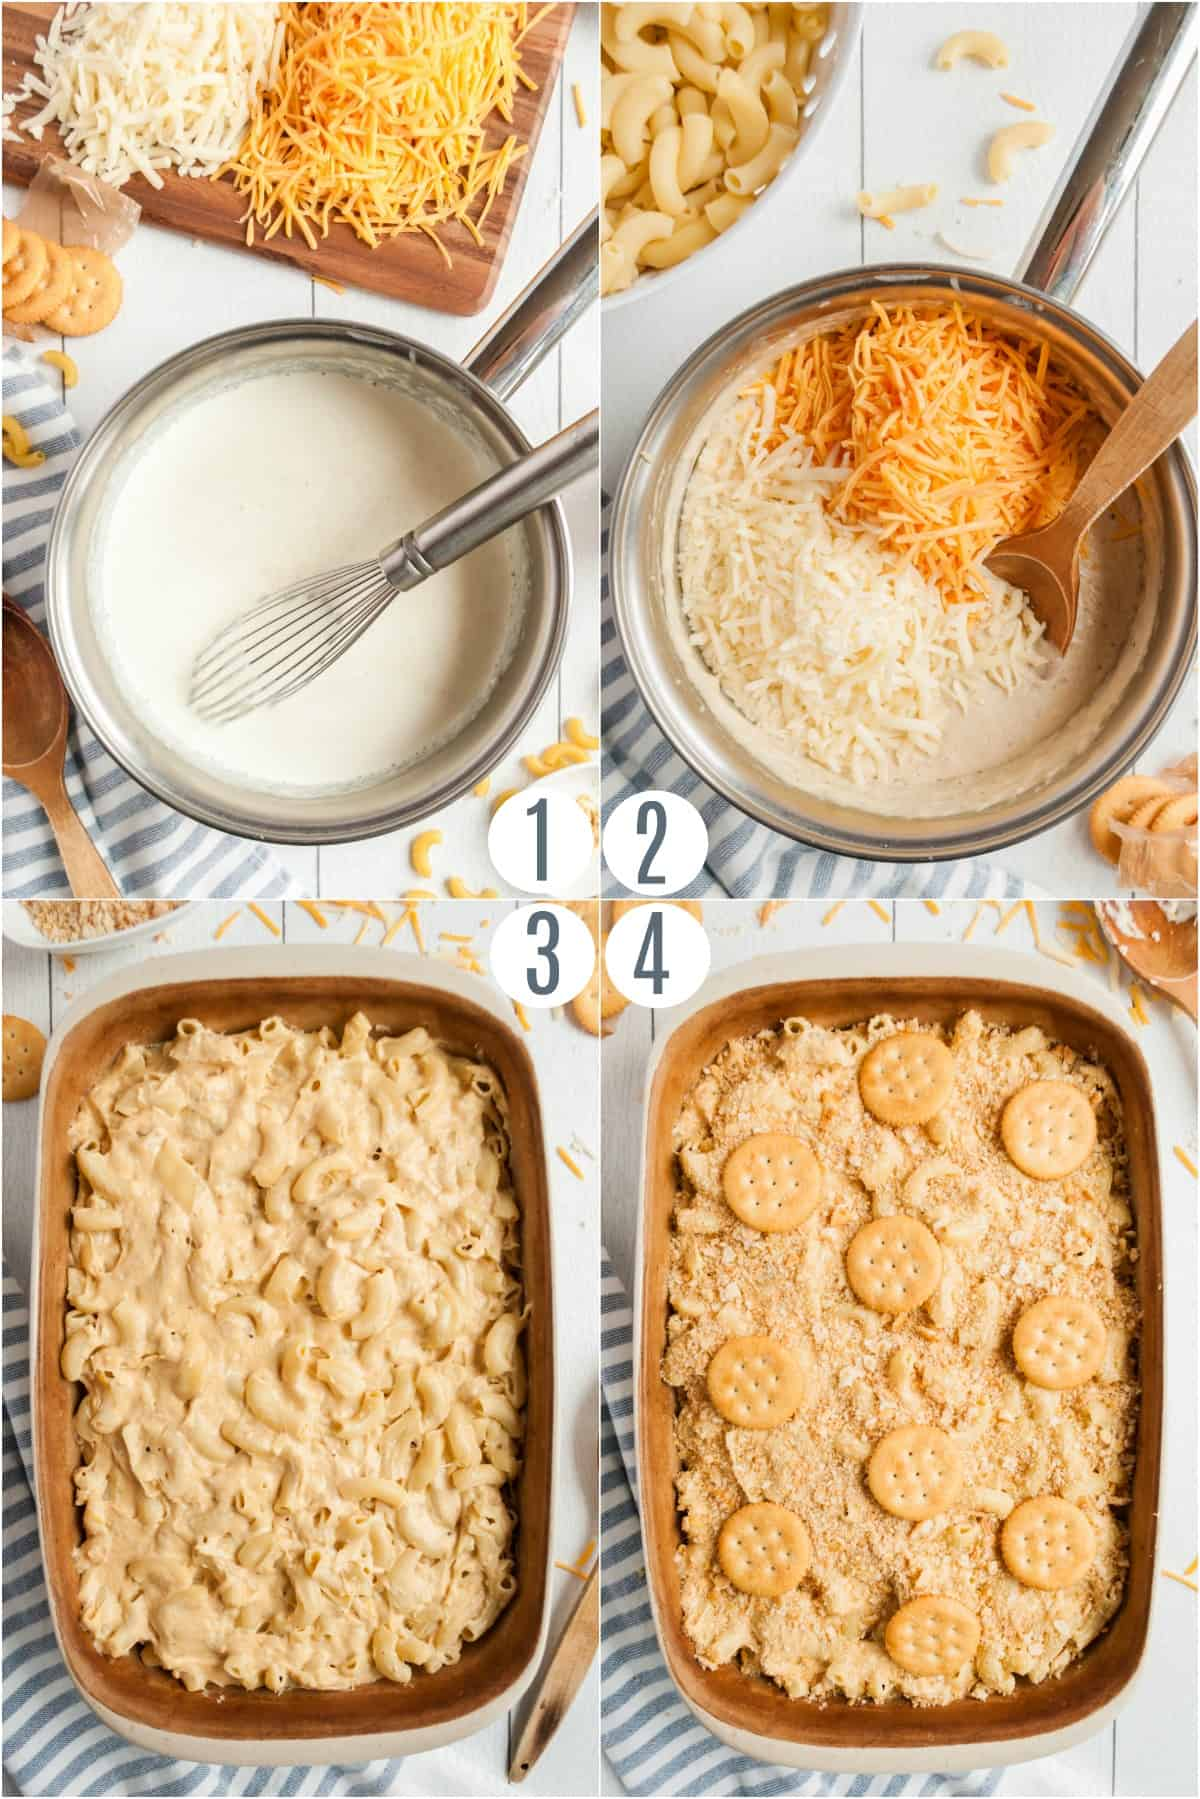 Step by step photos showing how to make homemade mac and cheese.